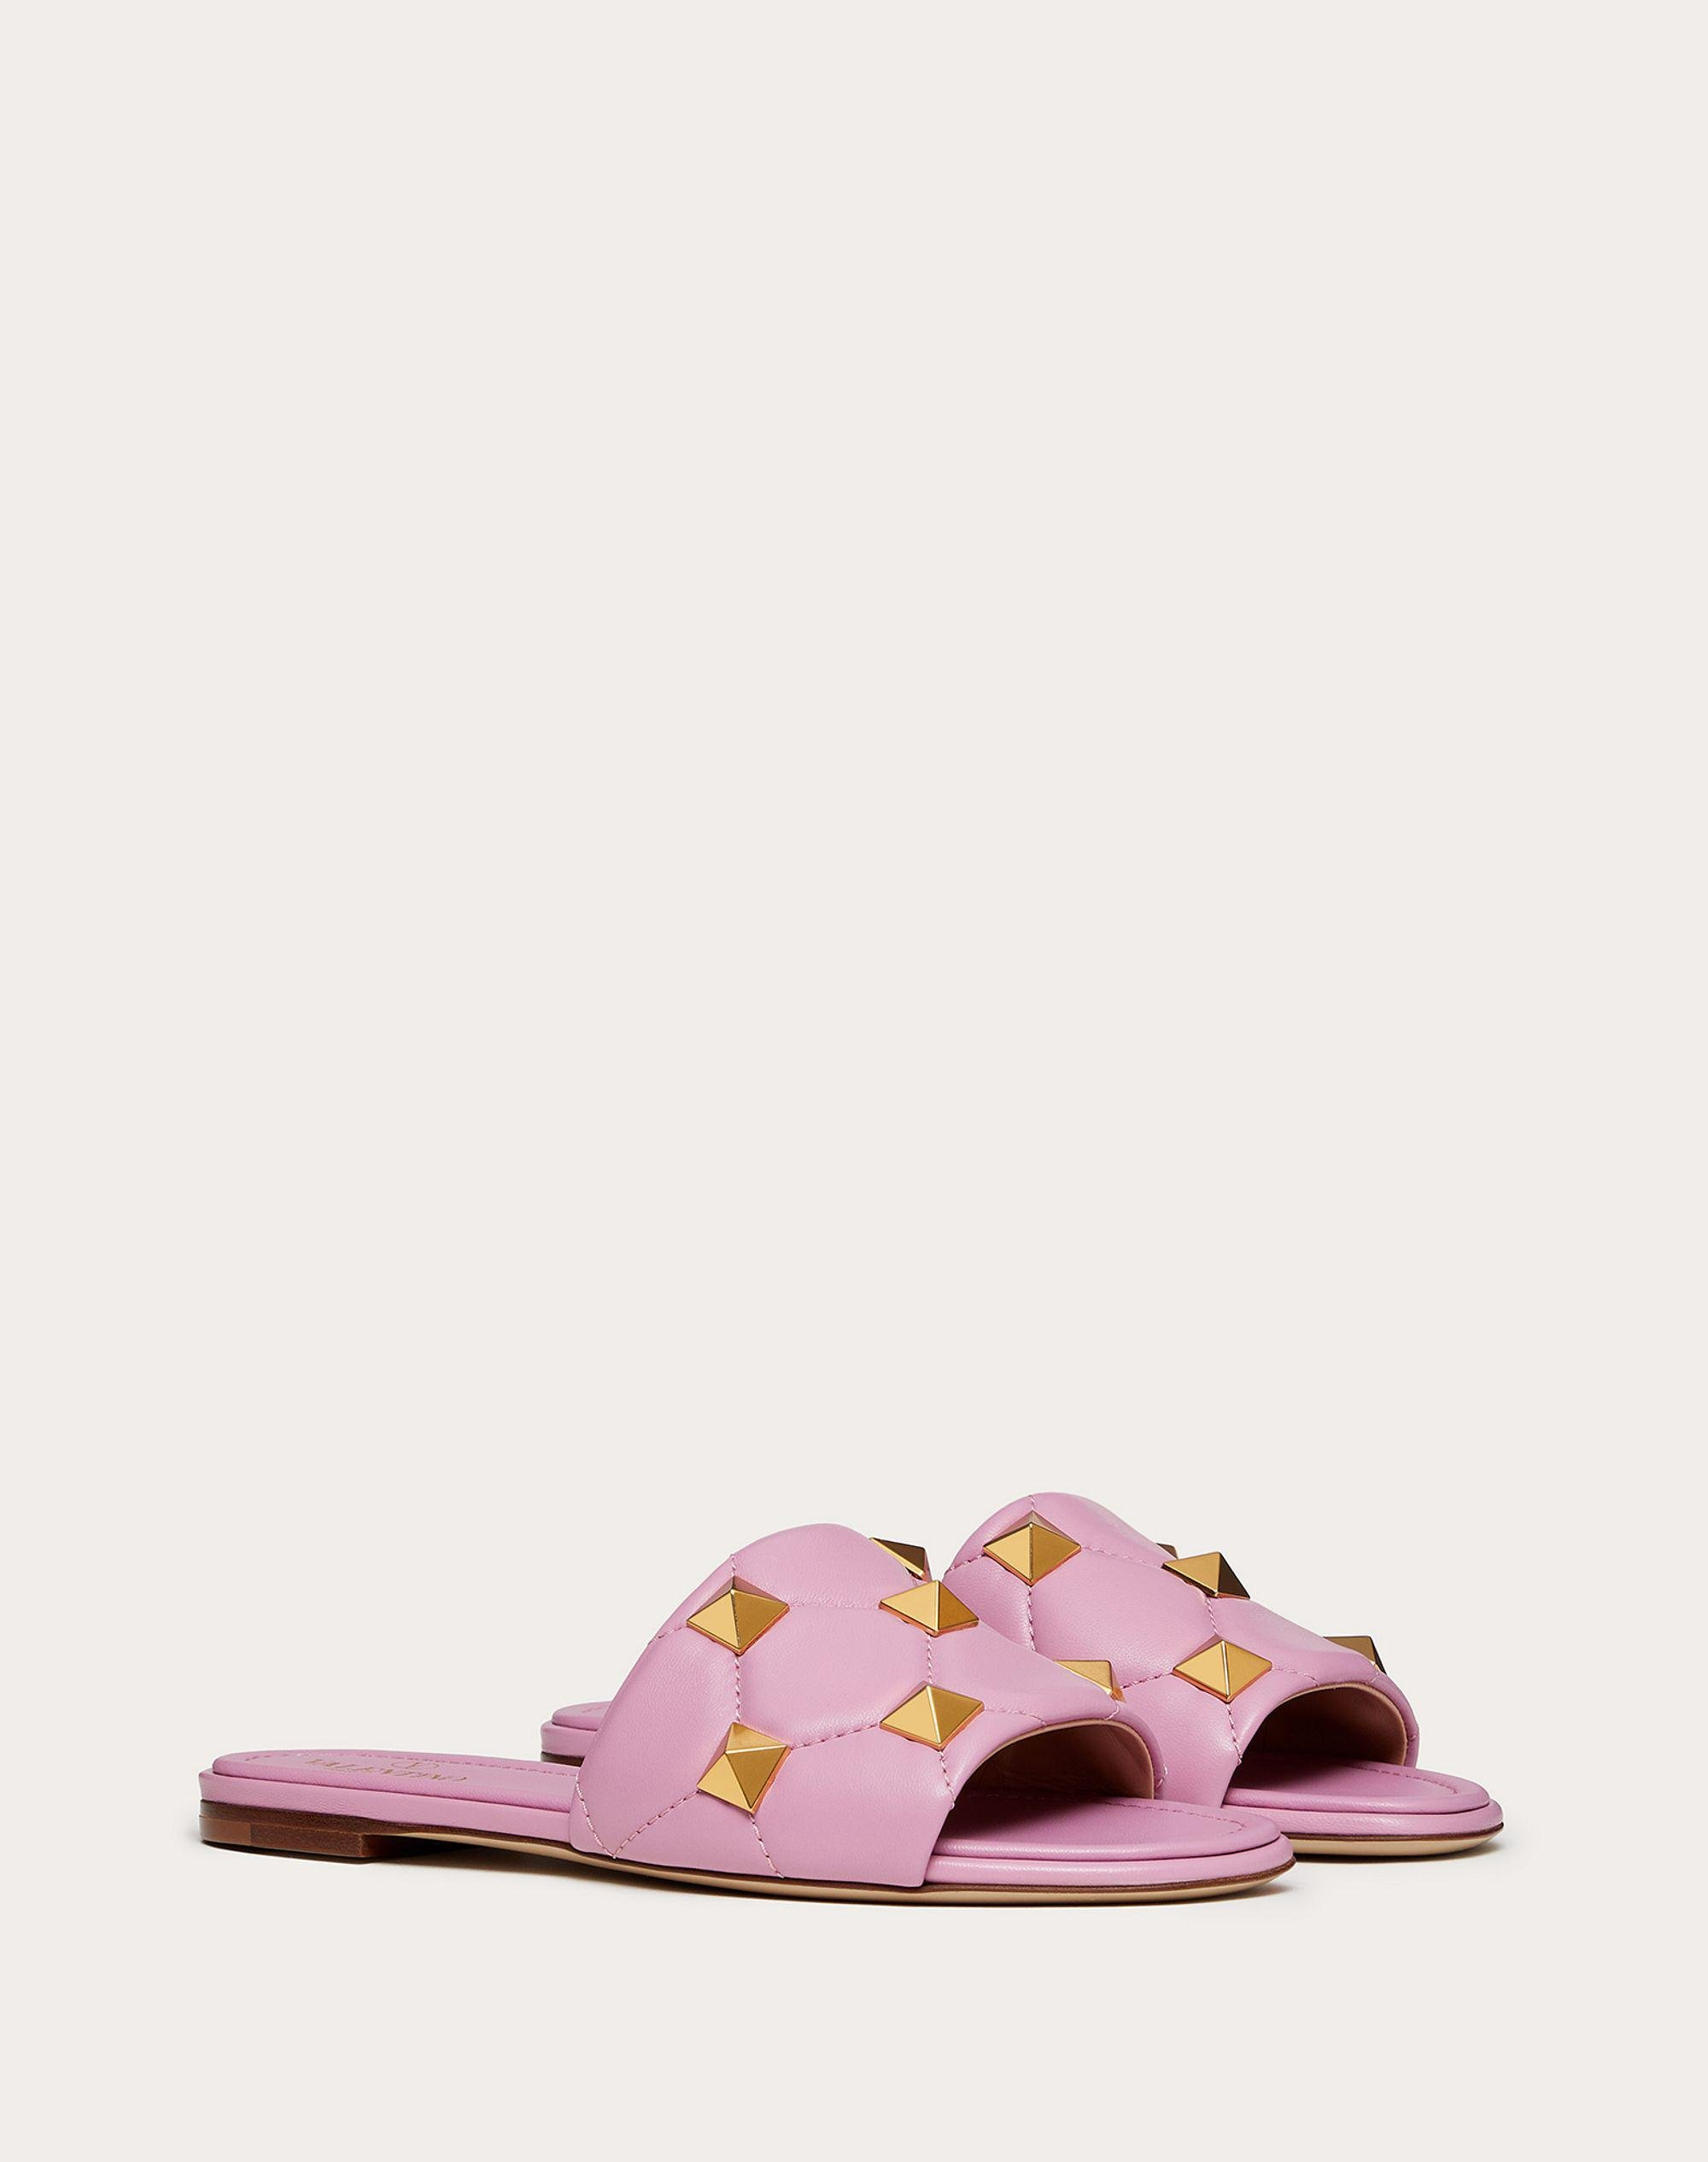 ROMAN STUD FLAT SLIDE SANDAL IN QUILTED NAPPA 1